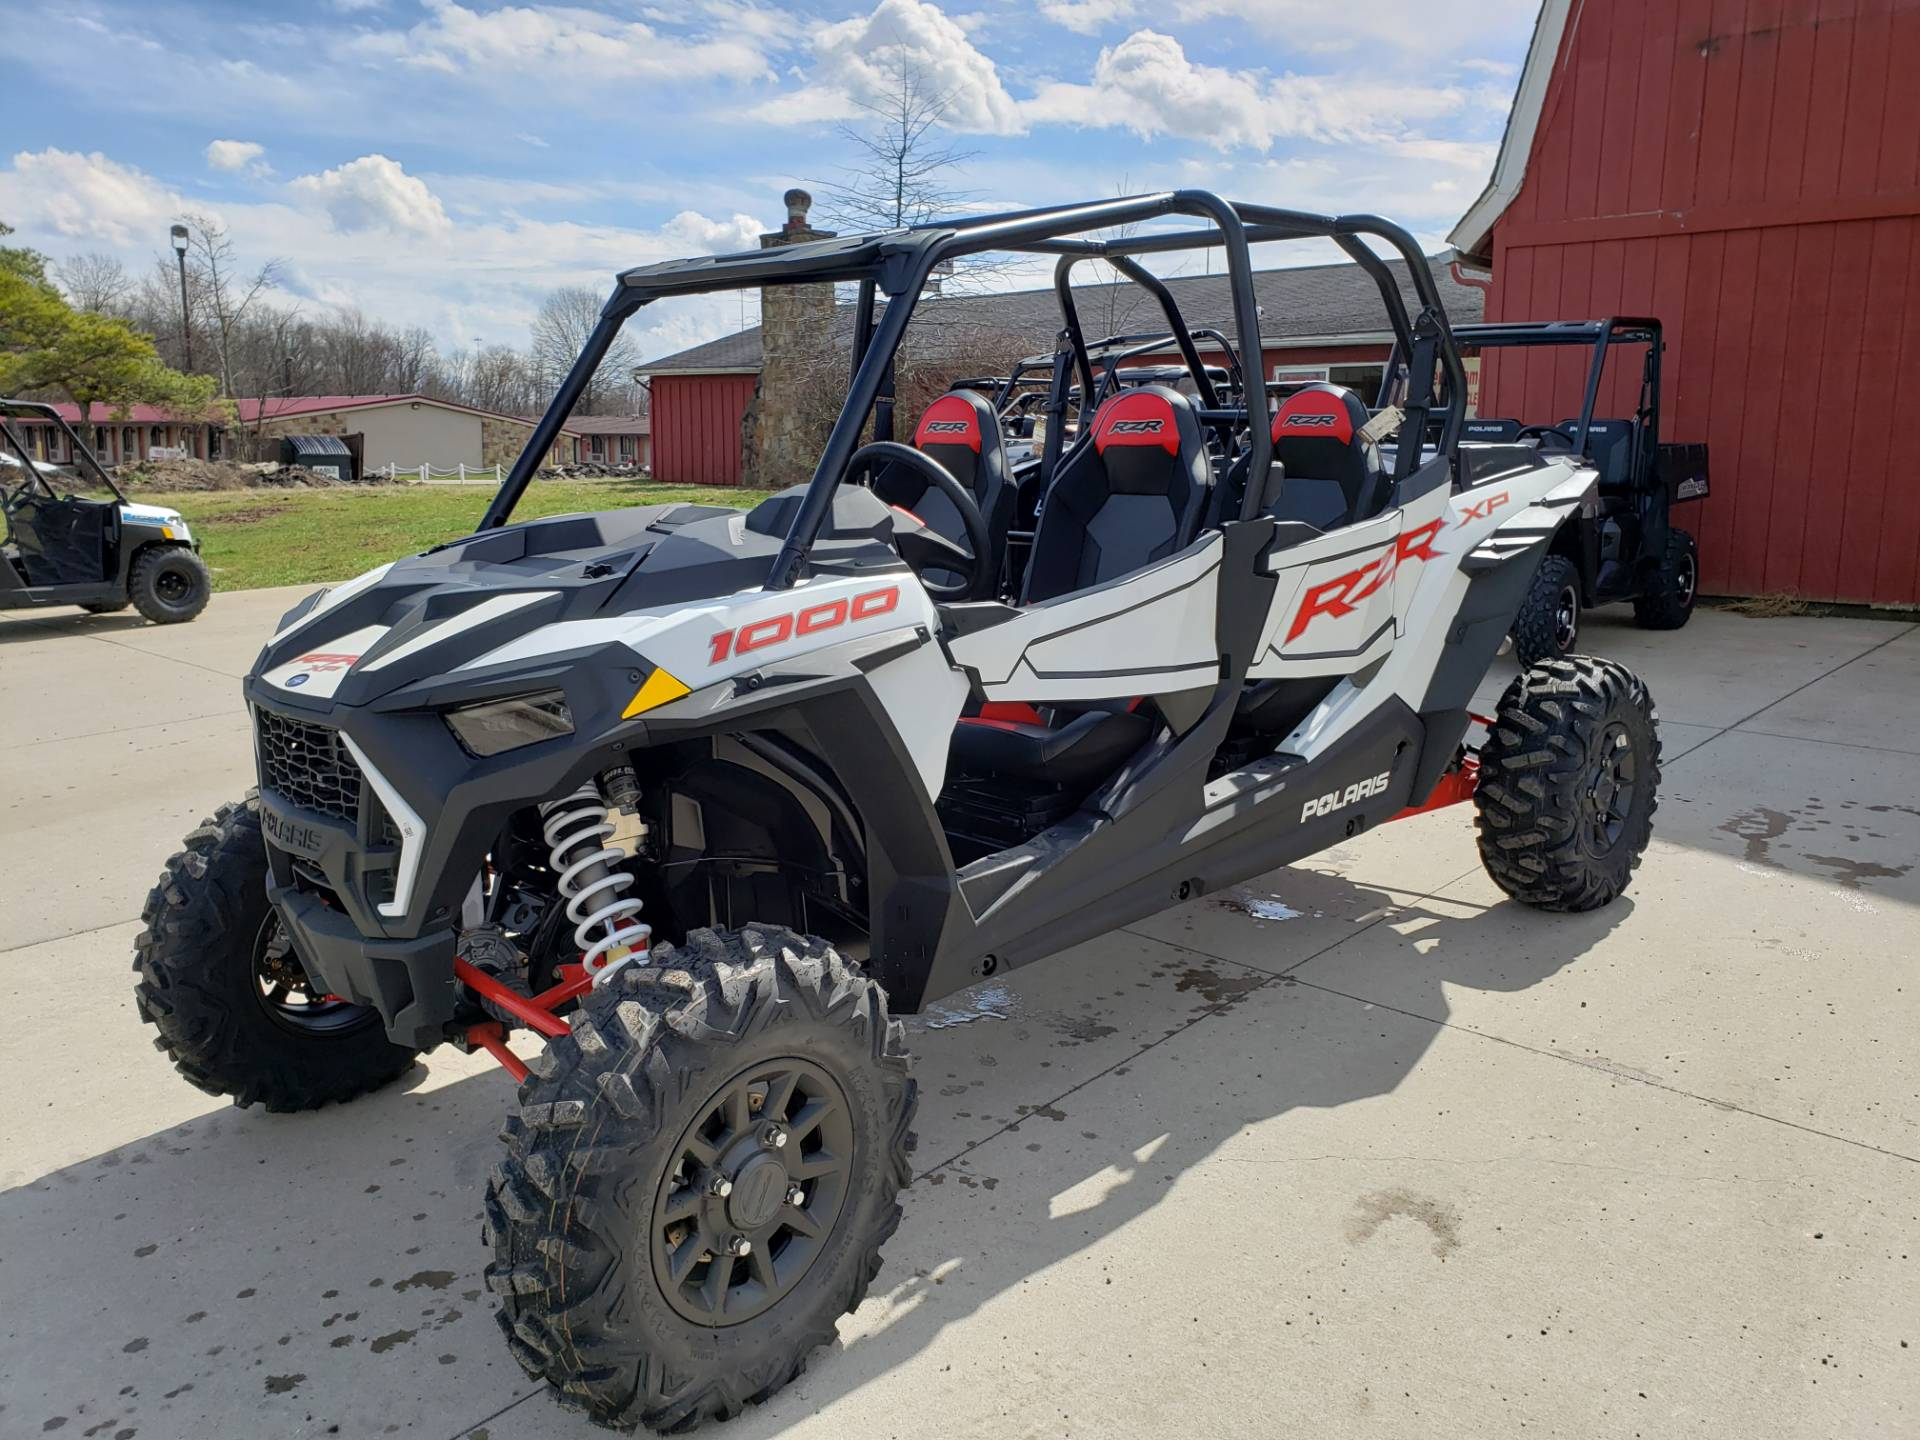 2020 Polaris RZR XP 4 1000 in Cambridge, Ohio - Photo 6